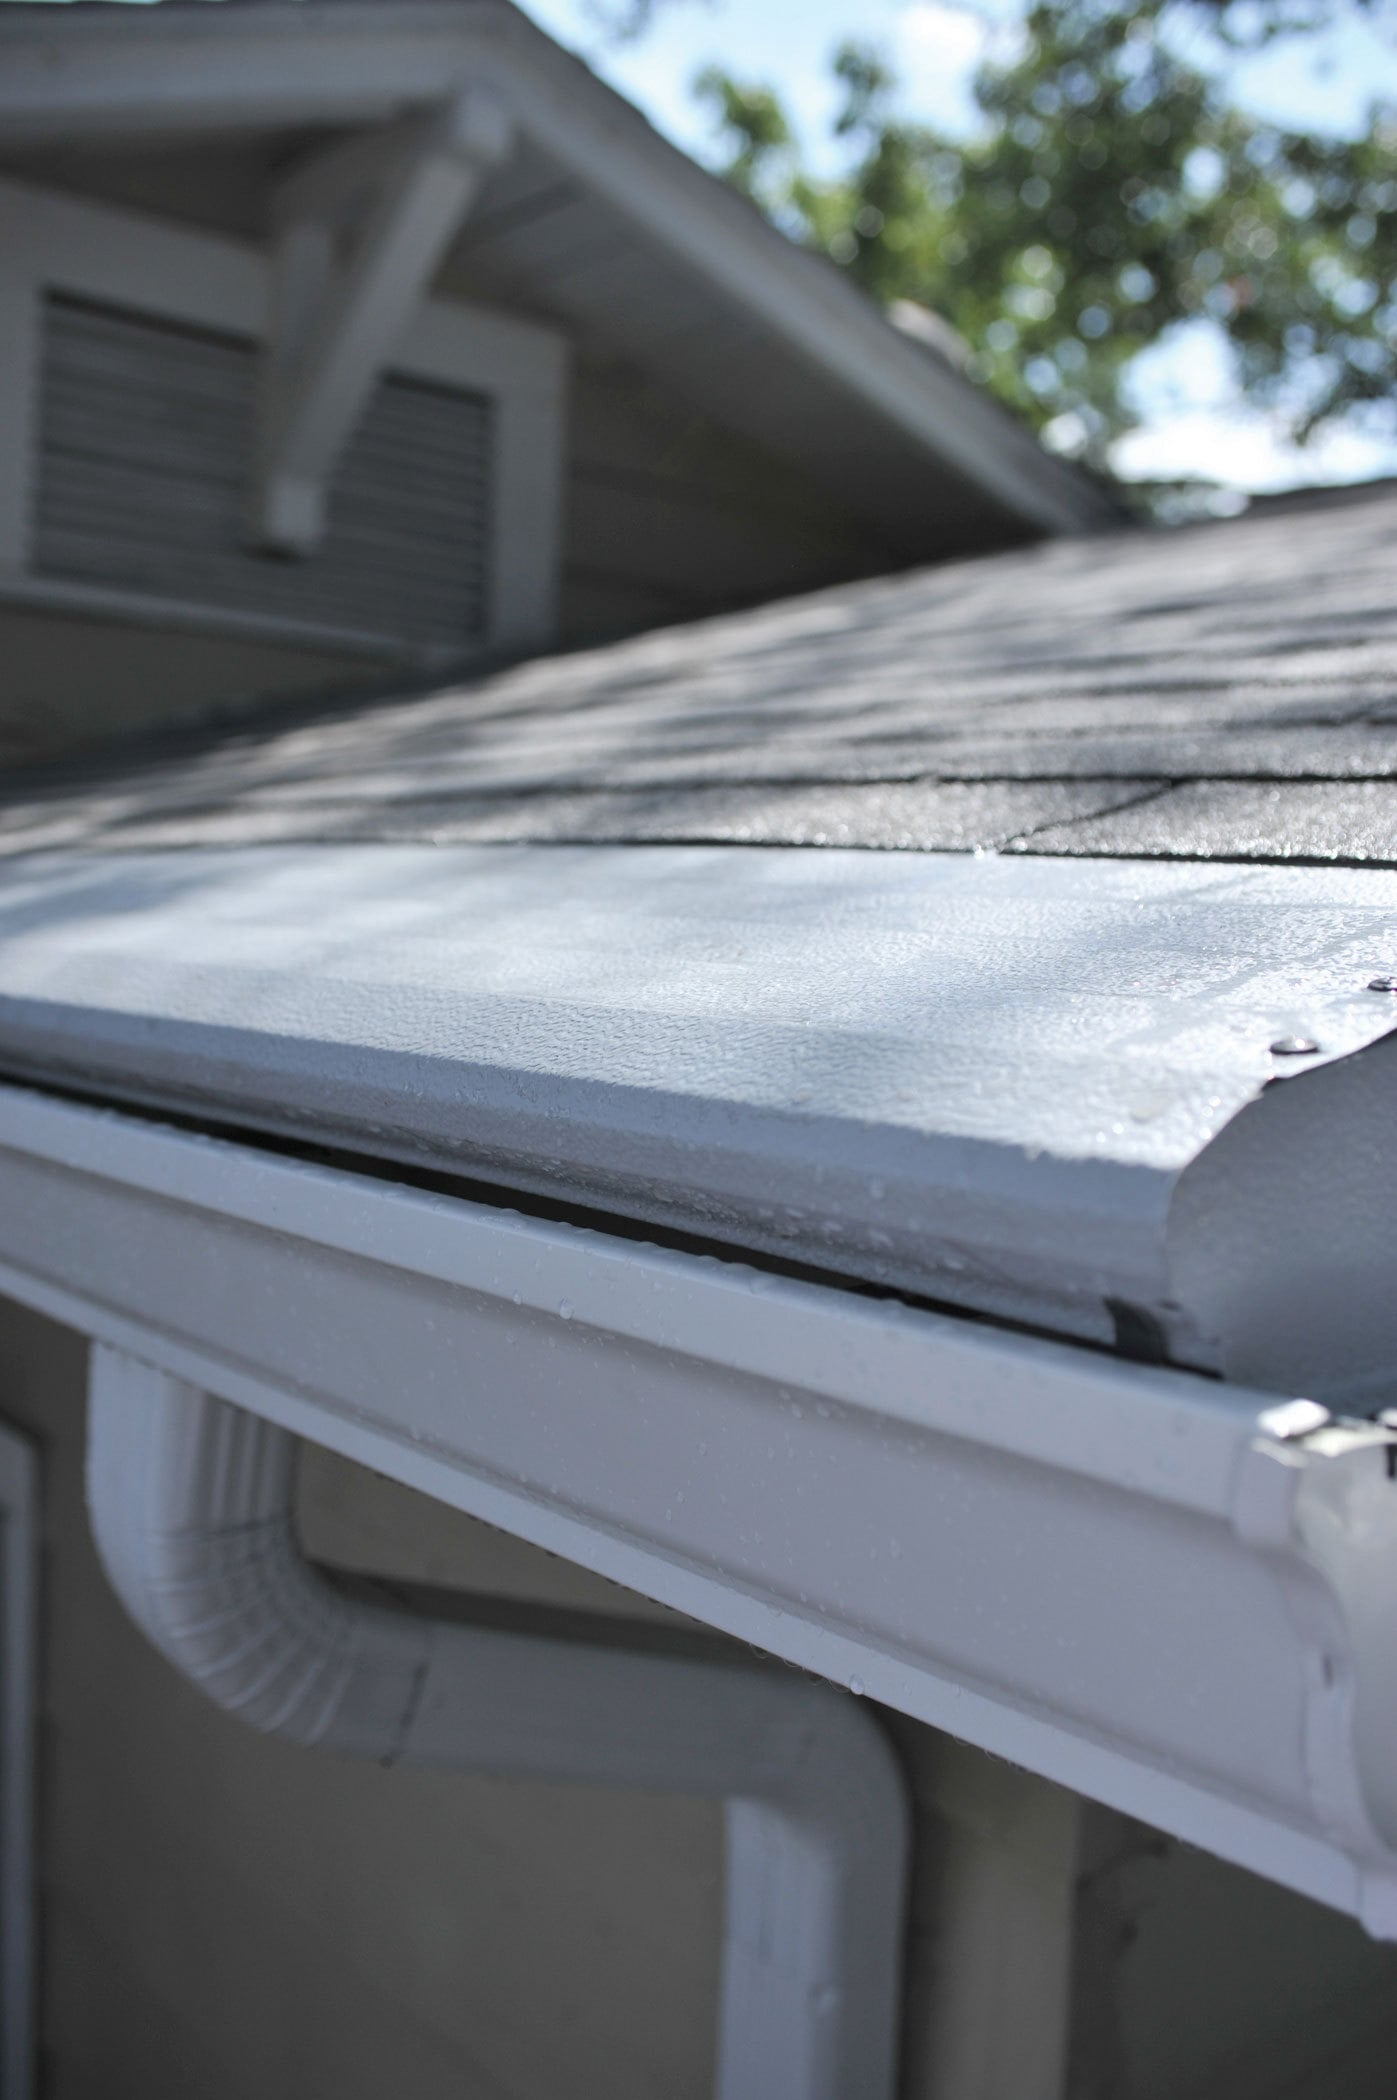 Surface-tension gutter guards